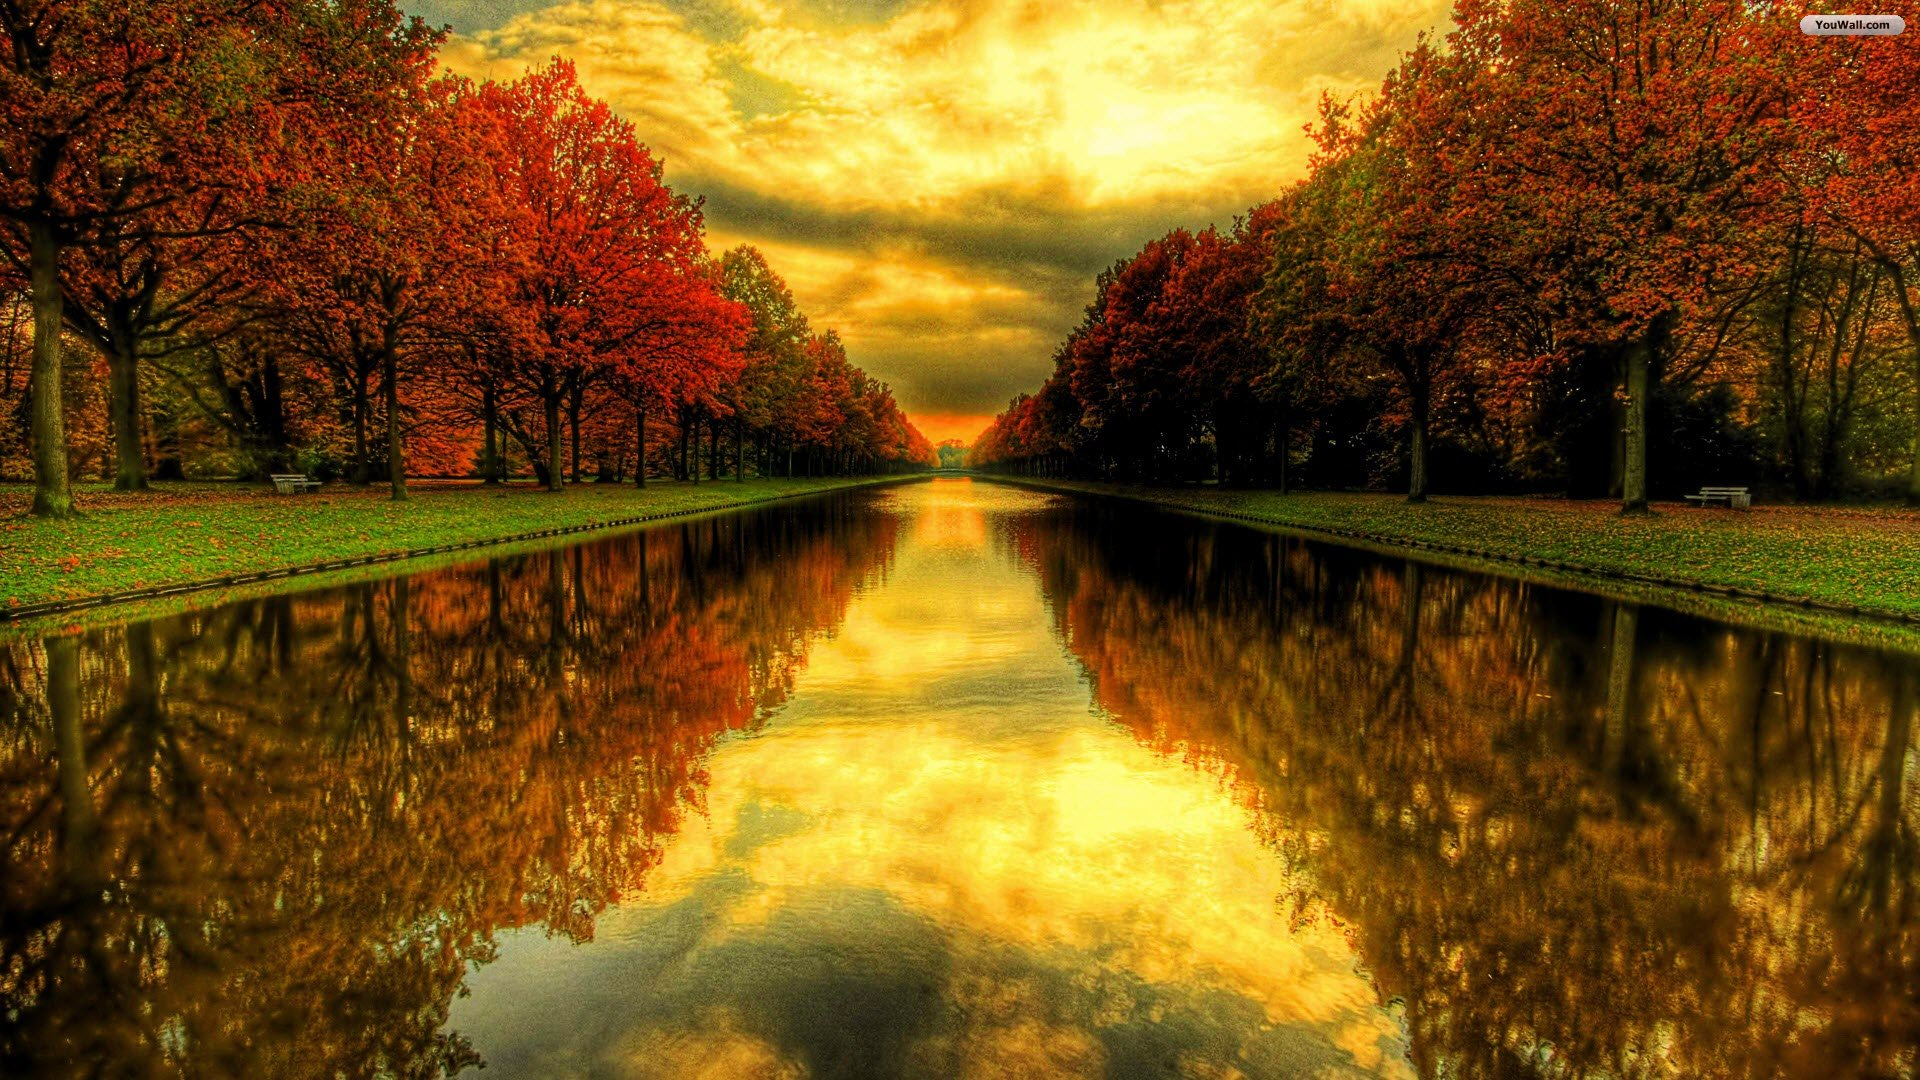 Beautiful Autumn Wallpapers - WallpaperSafari